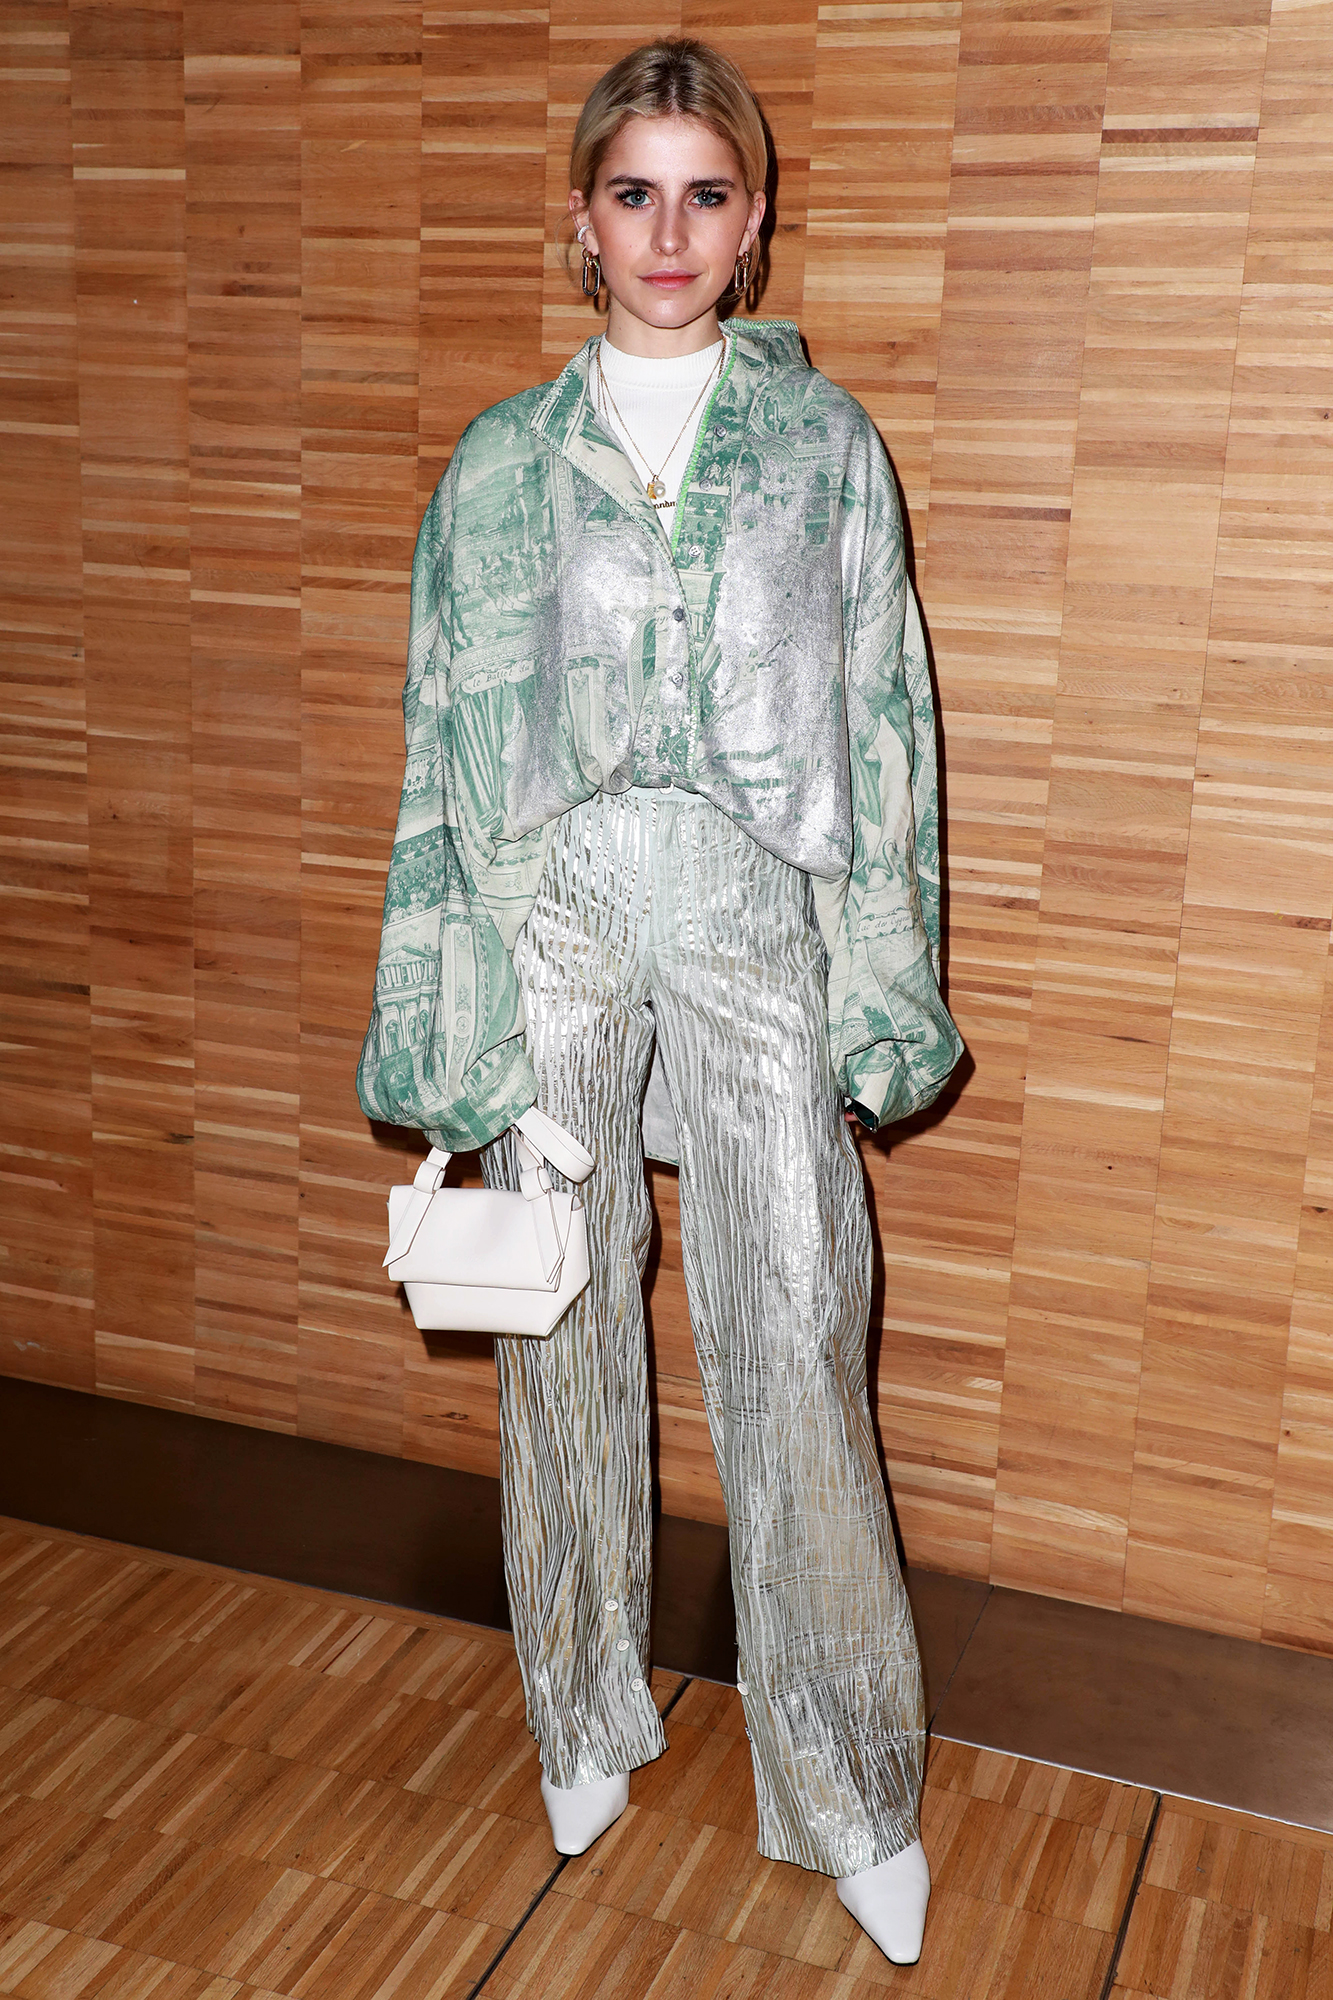 See the Best Celebrity Street Style From Paris Menswear Fall-Winter 2019 Fashion Week - The blogger shined in metallic pleated pants and a silver-accented blouse at the Acne Studio presentation on Wednesday, January 16.